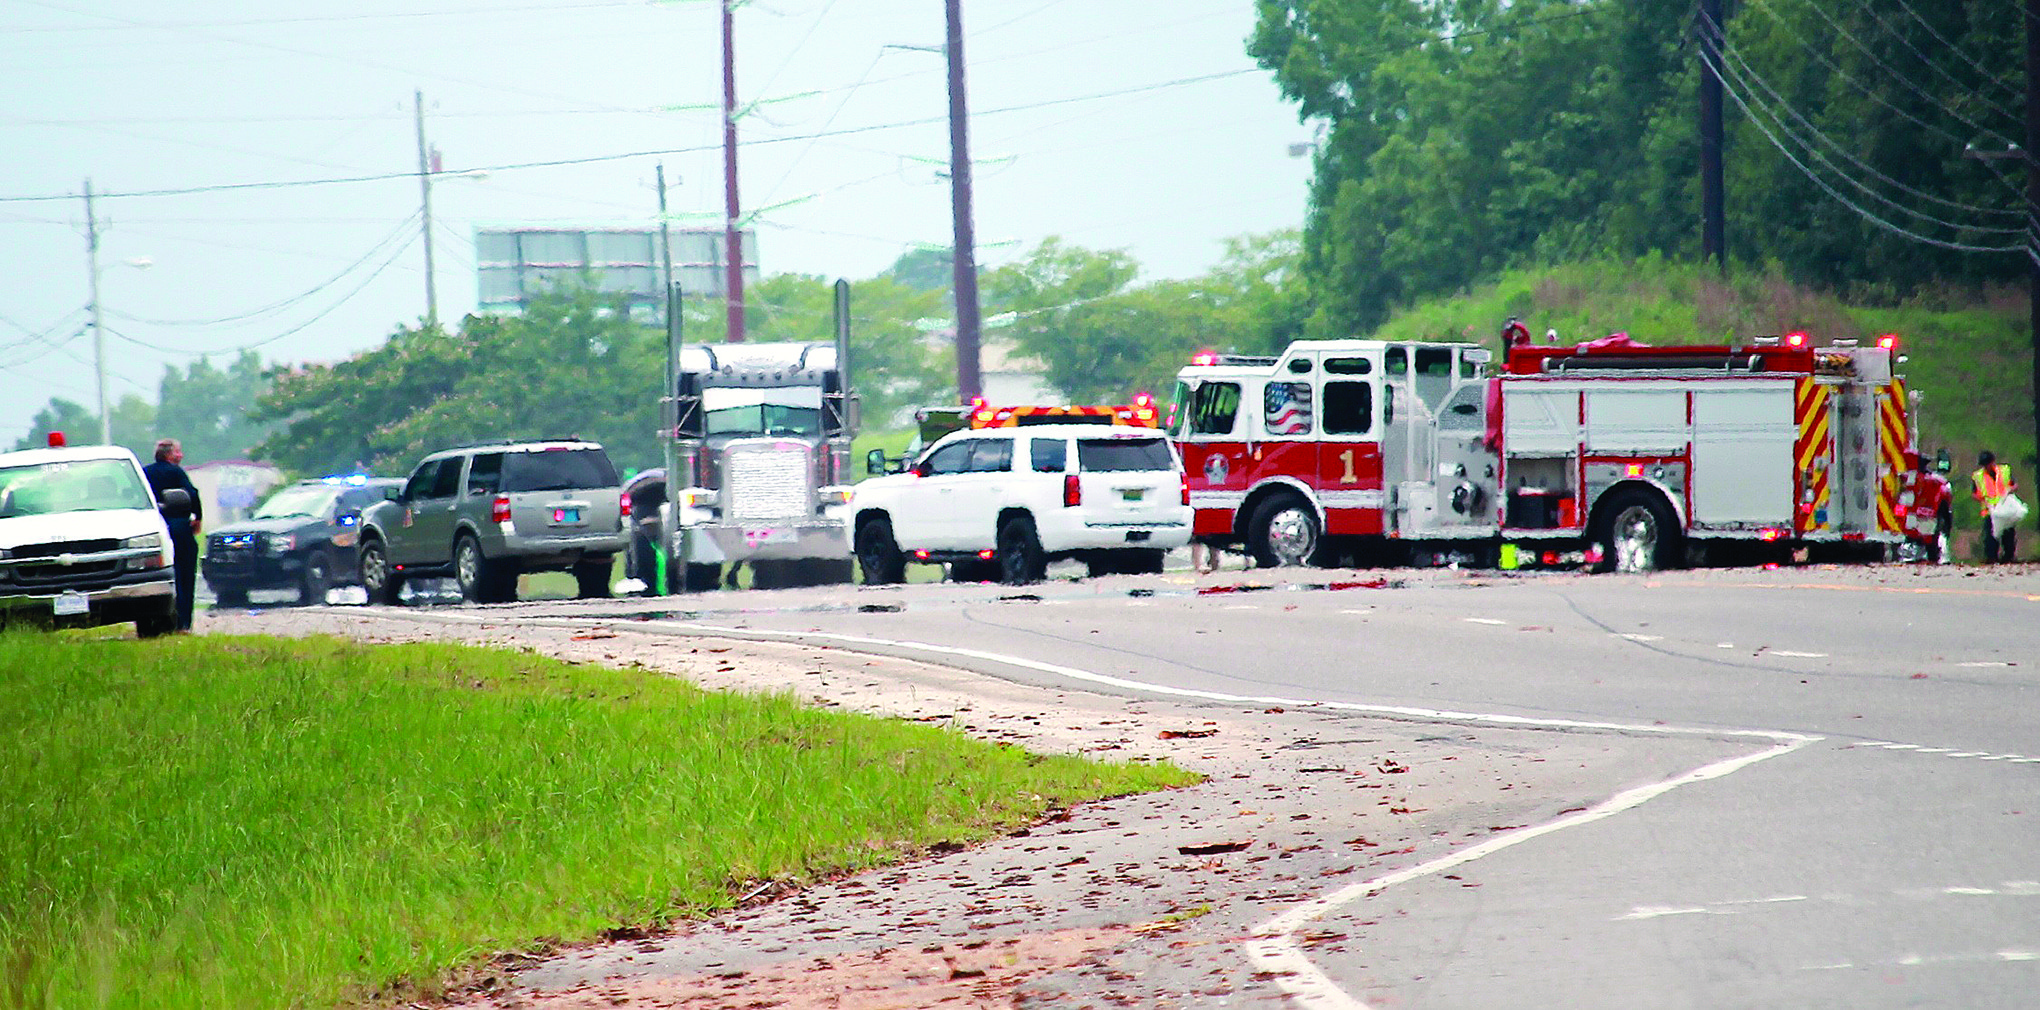 A portion of Highway 78 West was closed for around two hours Wednesday as responders cleaned up a fuel spill.